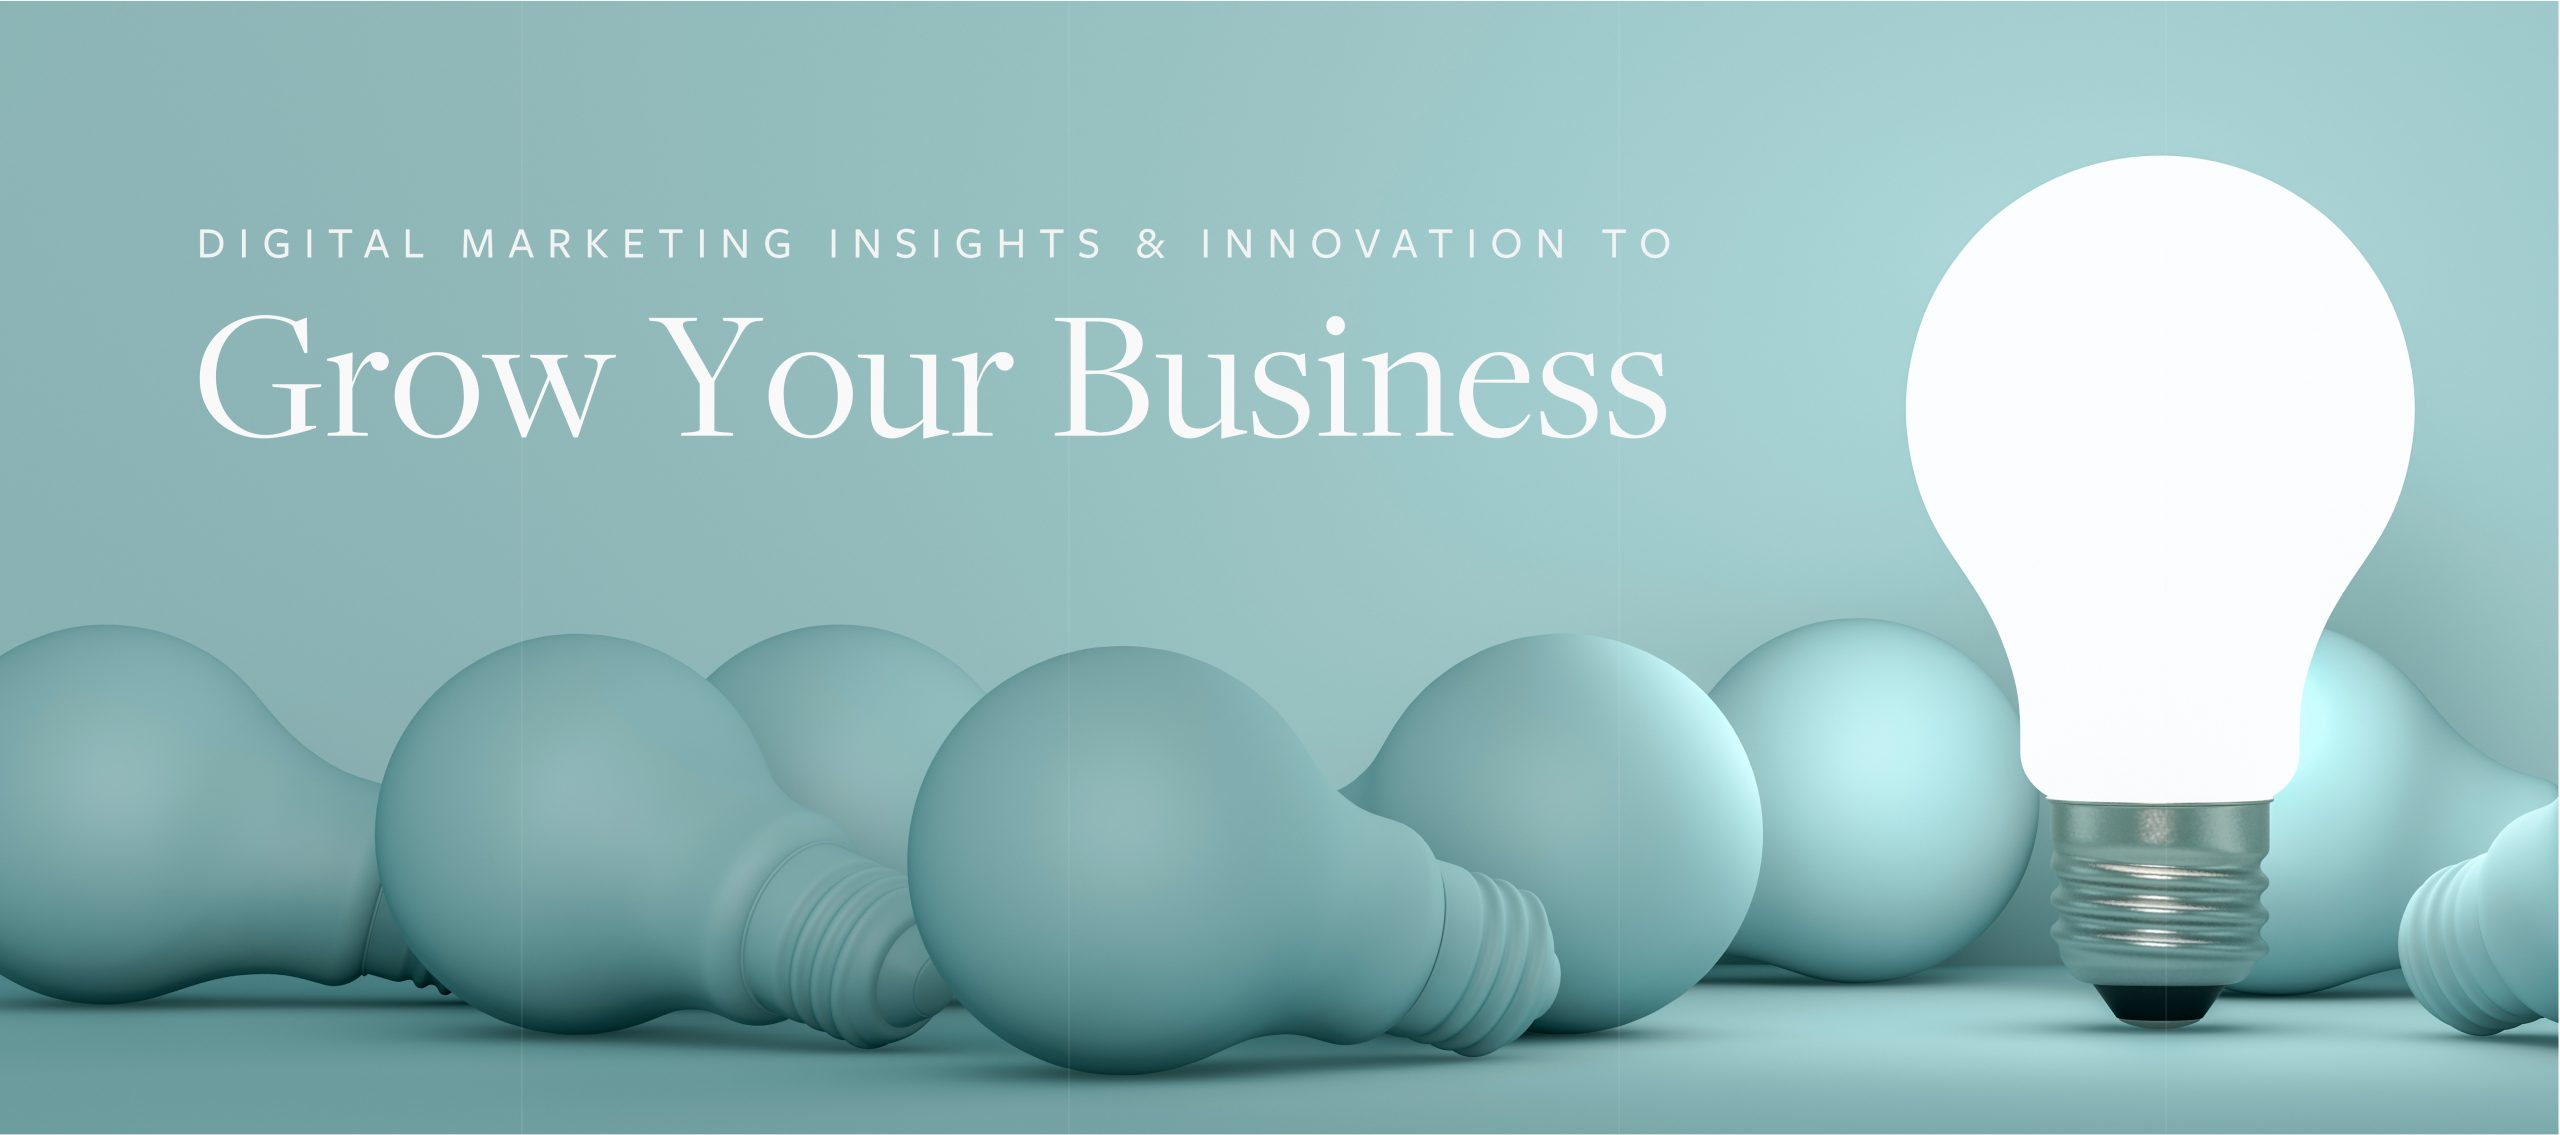 Digital Marketing Insights & Innovation to Grow Your Business